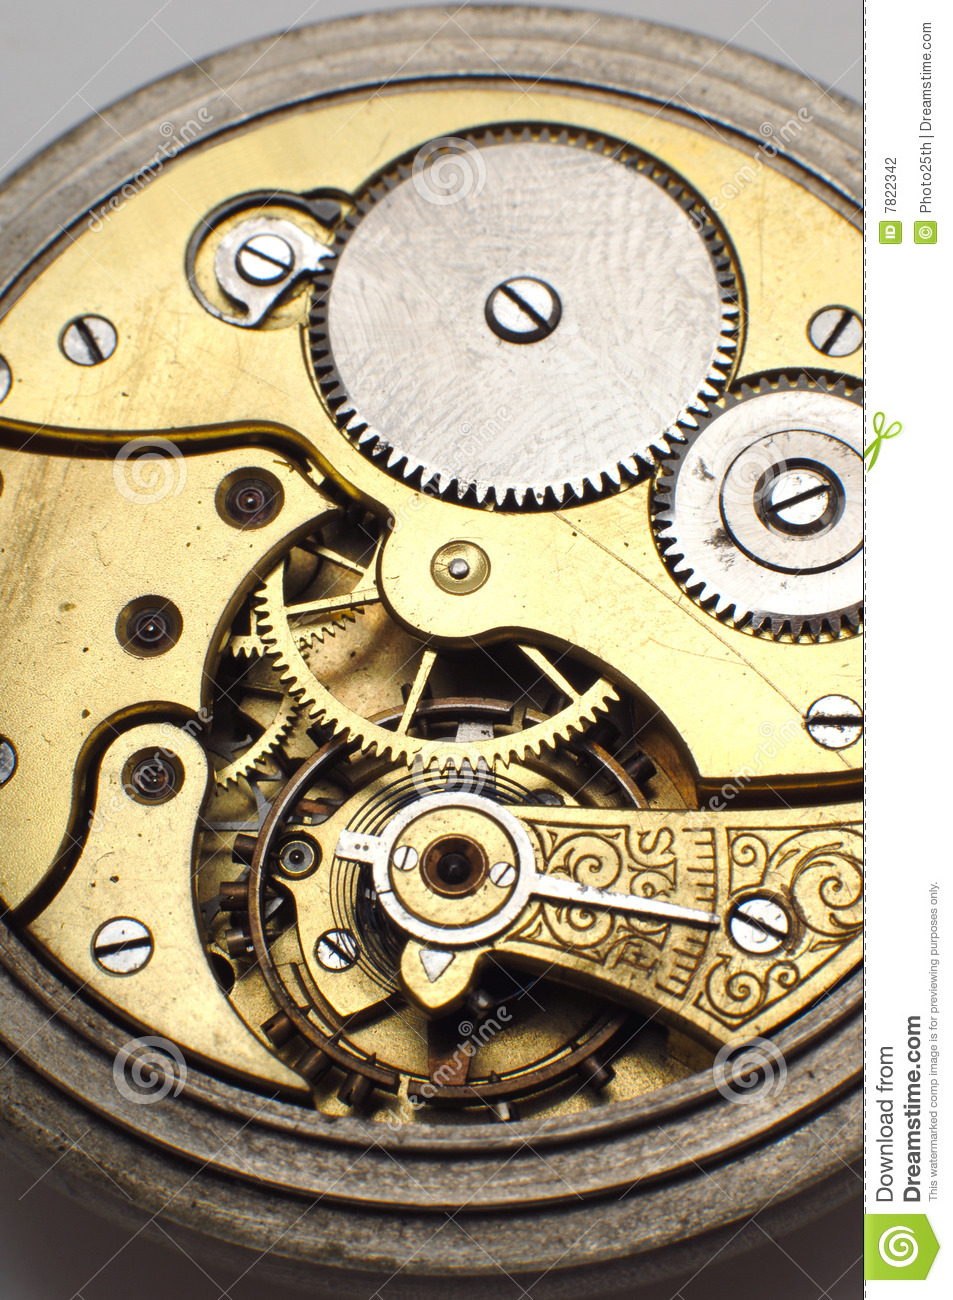 how to change the mecanism of watches